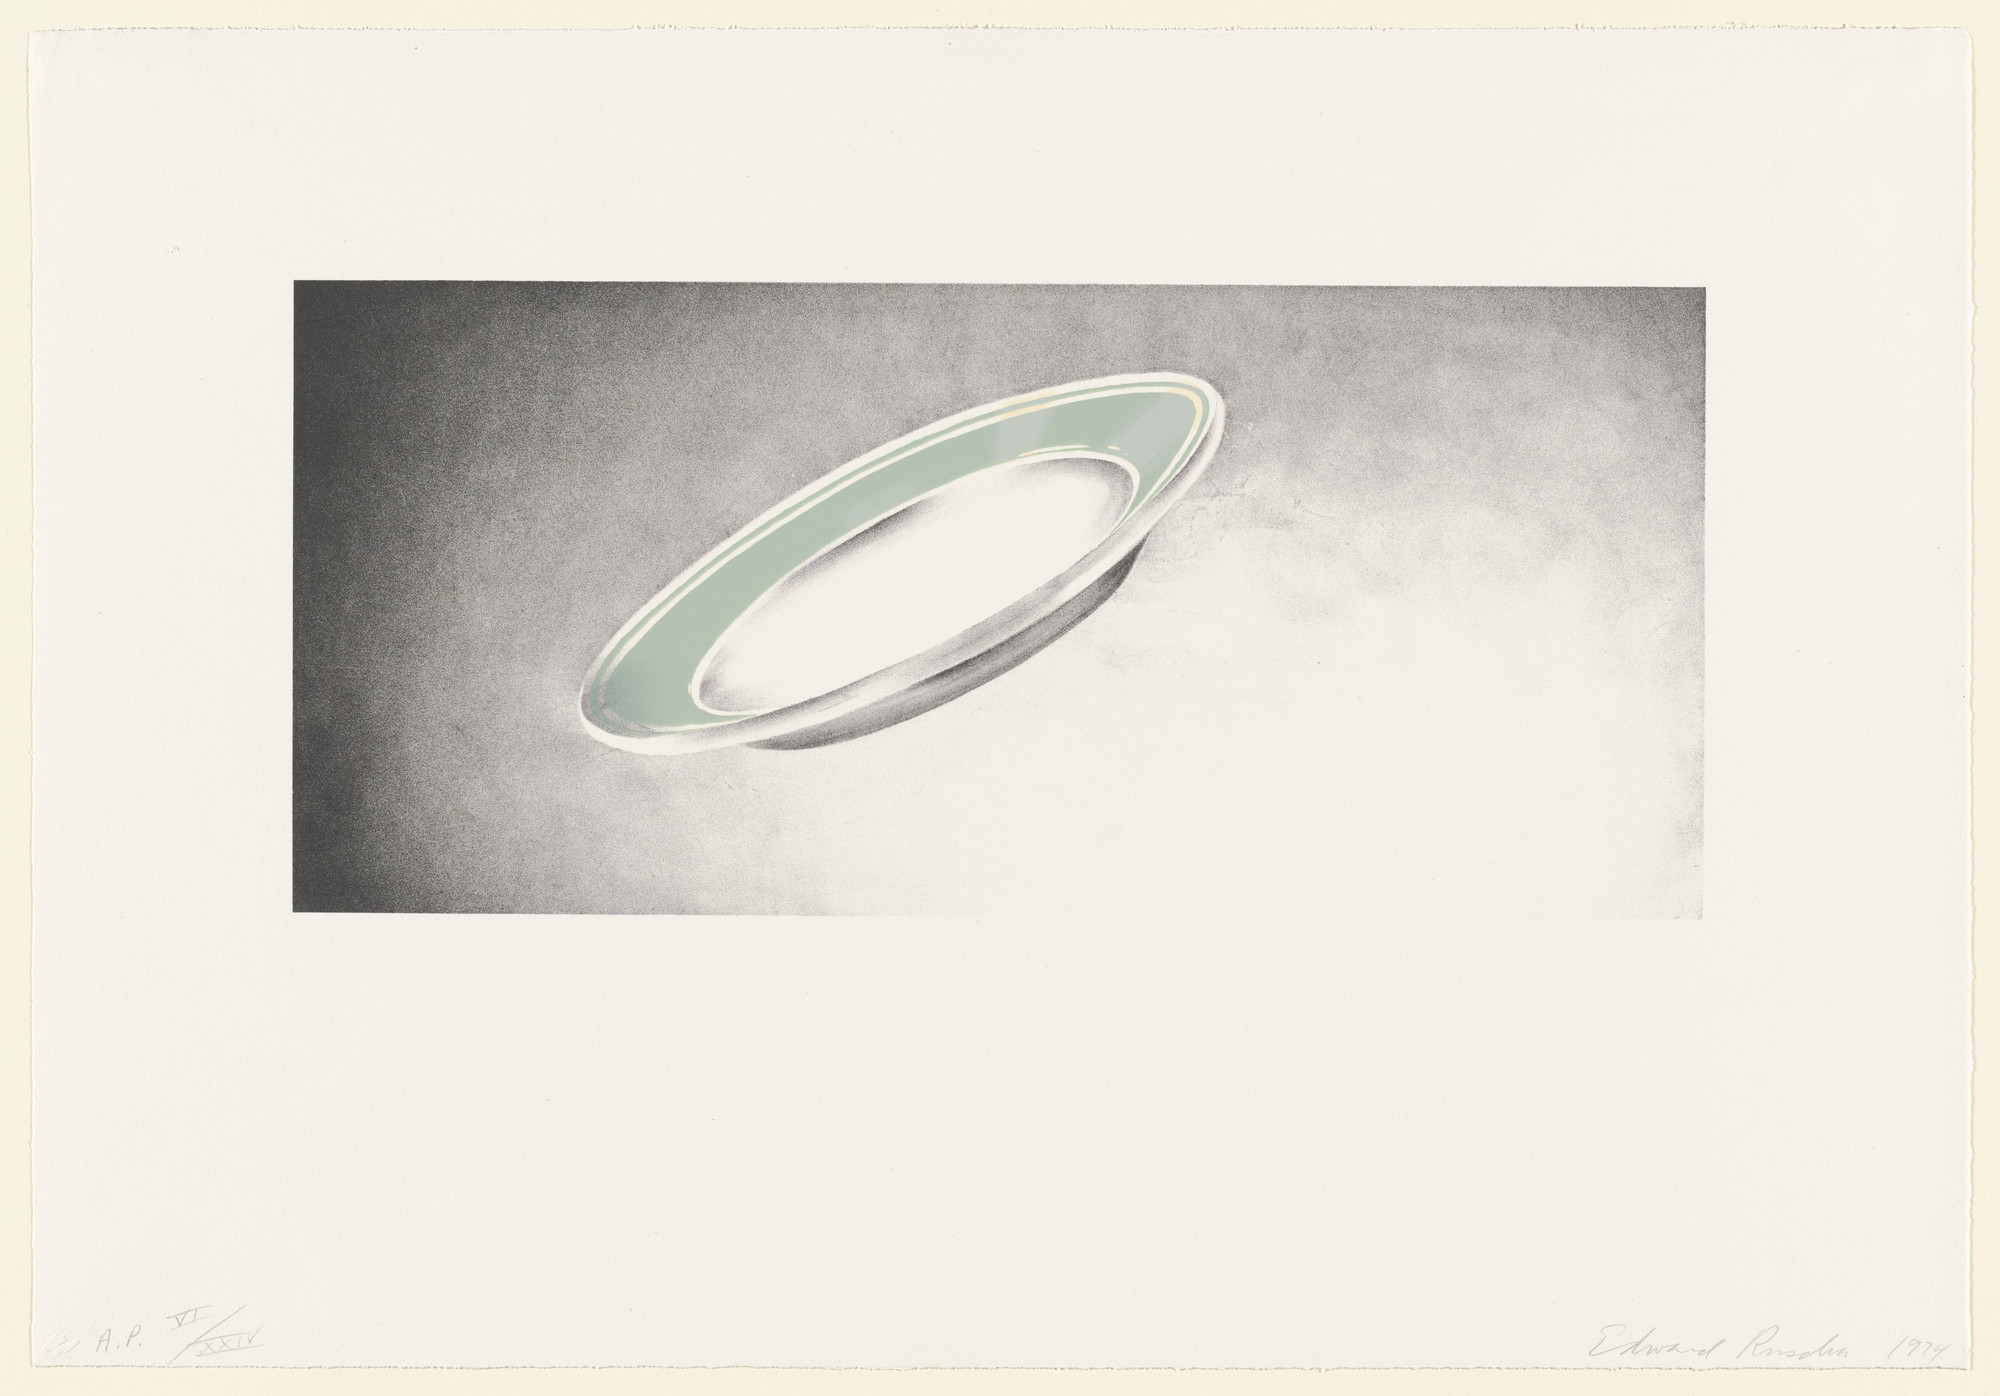 Edward Ruscha. Plate from Domestic Tranquility. 1974